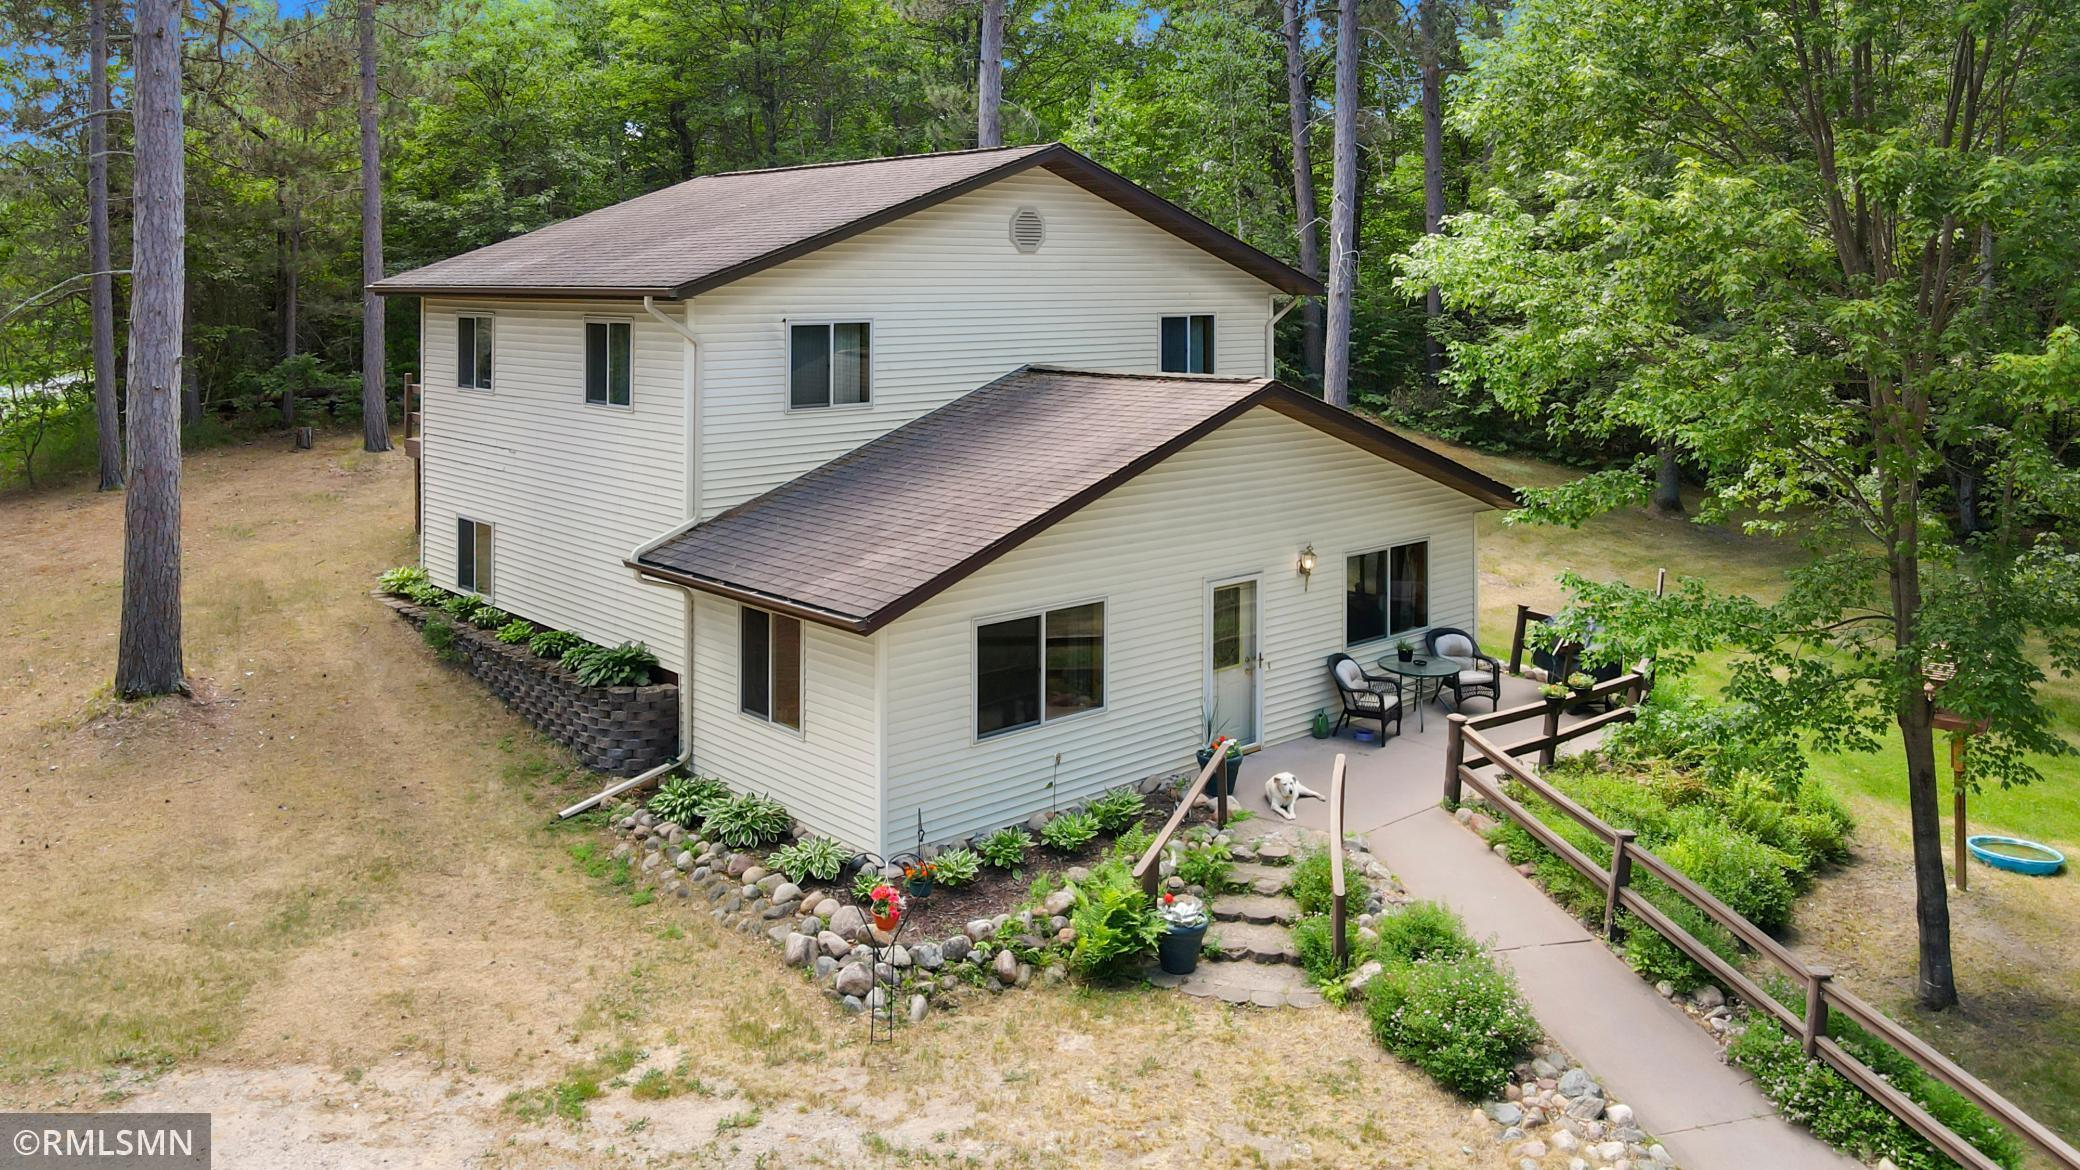 This home offers one level living with two bedrooms upstairs for guests or kids. Sitting on an acre you have complete privacy!  Close to town, yet gives the country feel.  Kitchen is spacious, main floor laundry and master bath all on the main level.  Handicap accessible with oversized doors and ramp to entry door.  The upstairs offers 2 bedrooms, bathroom and a family room, giving two comfortable private living spaces.  The garage is 24 X 48, the 4th stall has been finished off and can be used as a workshop, craft room or turned into a mother-in-law suite. Close to Pelican Lake, White Fish Chain, fine dining and several golf courses in the area.  Set up a private showing today!